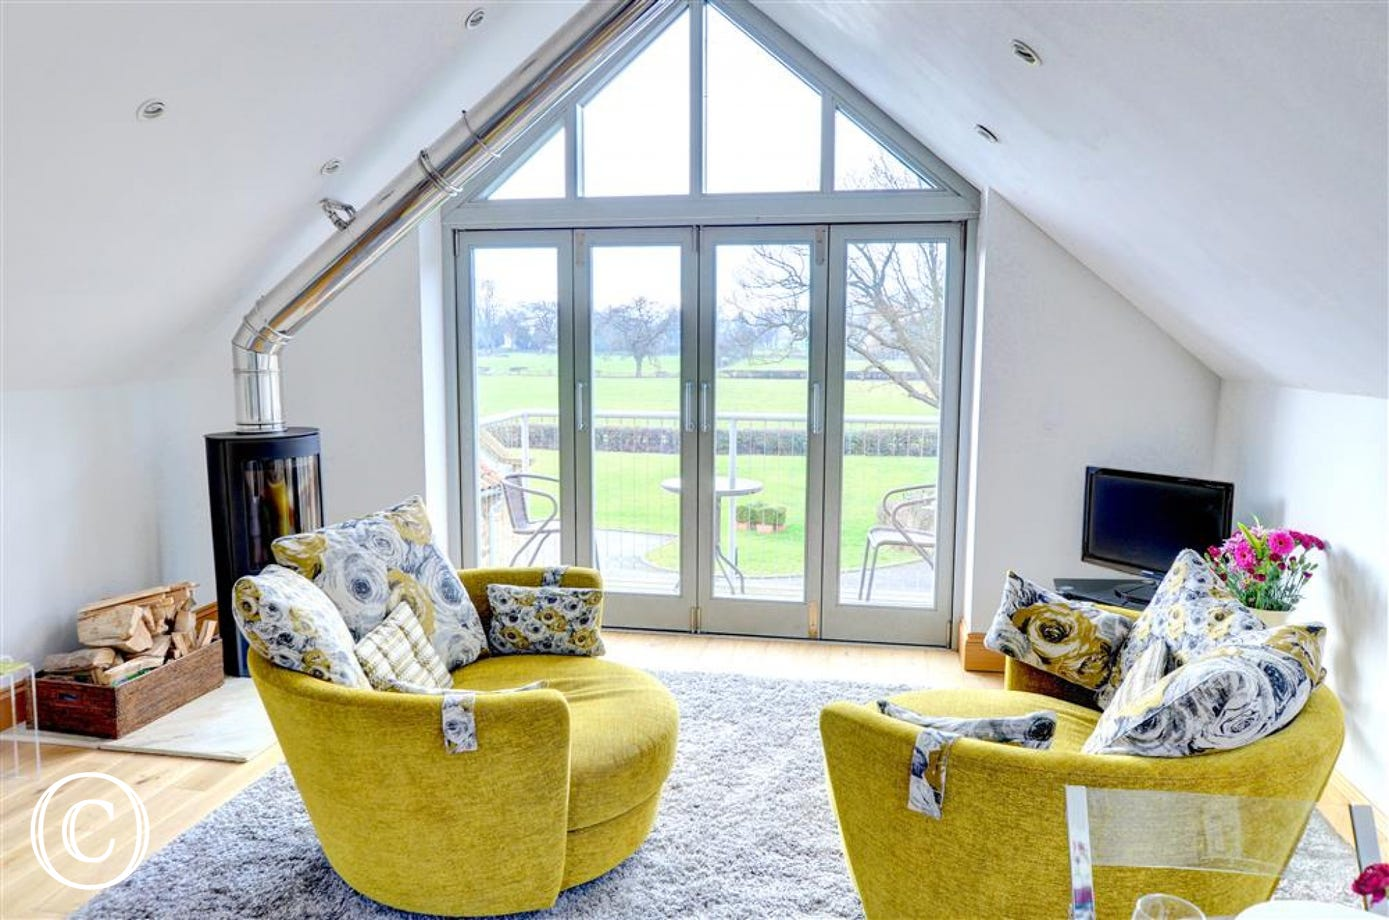 The lounge offers some beautiful views on the surrounding countryside.